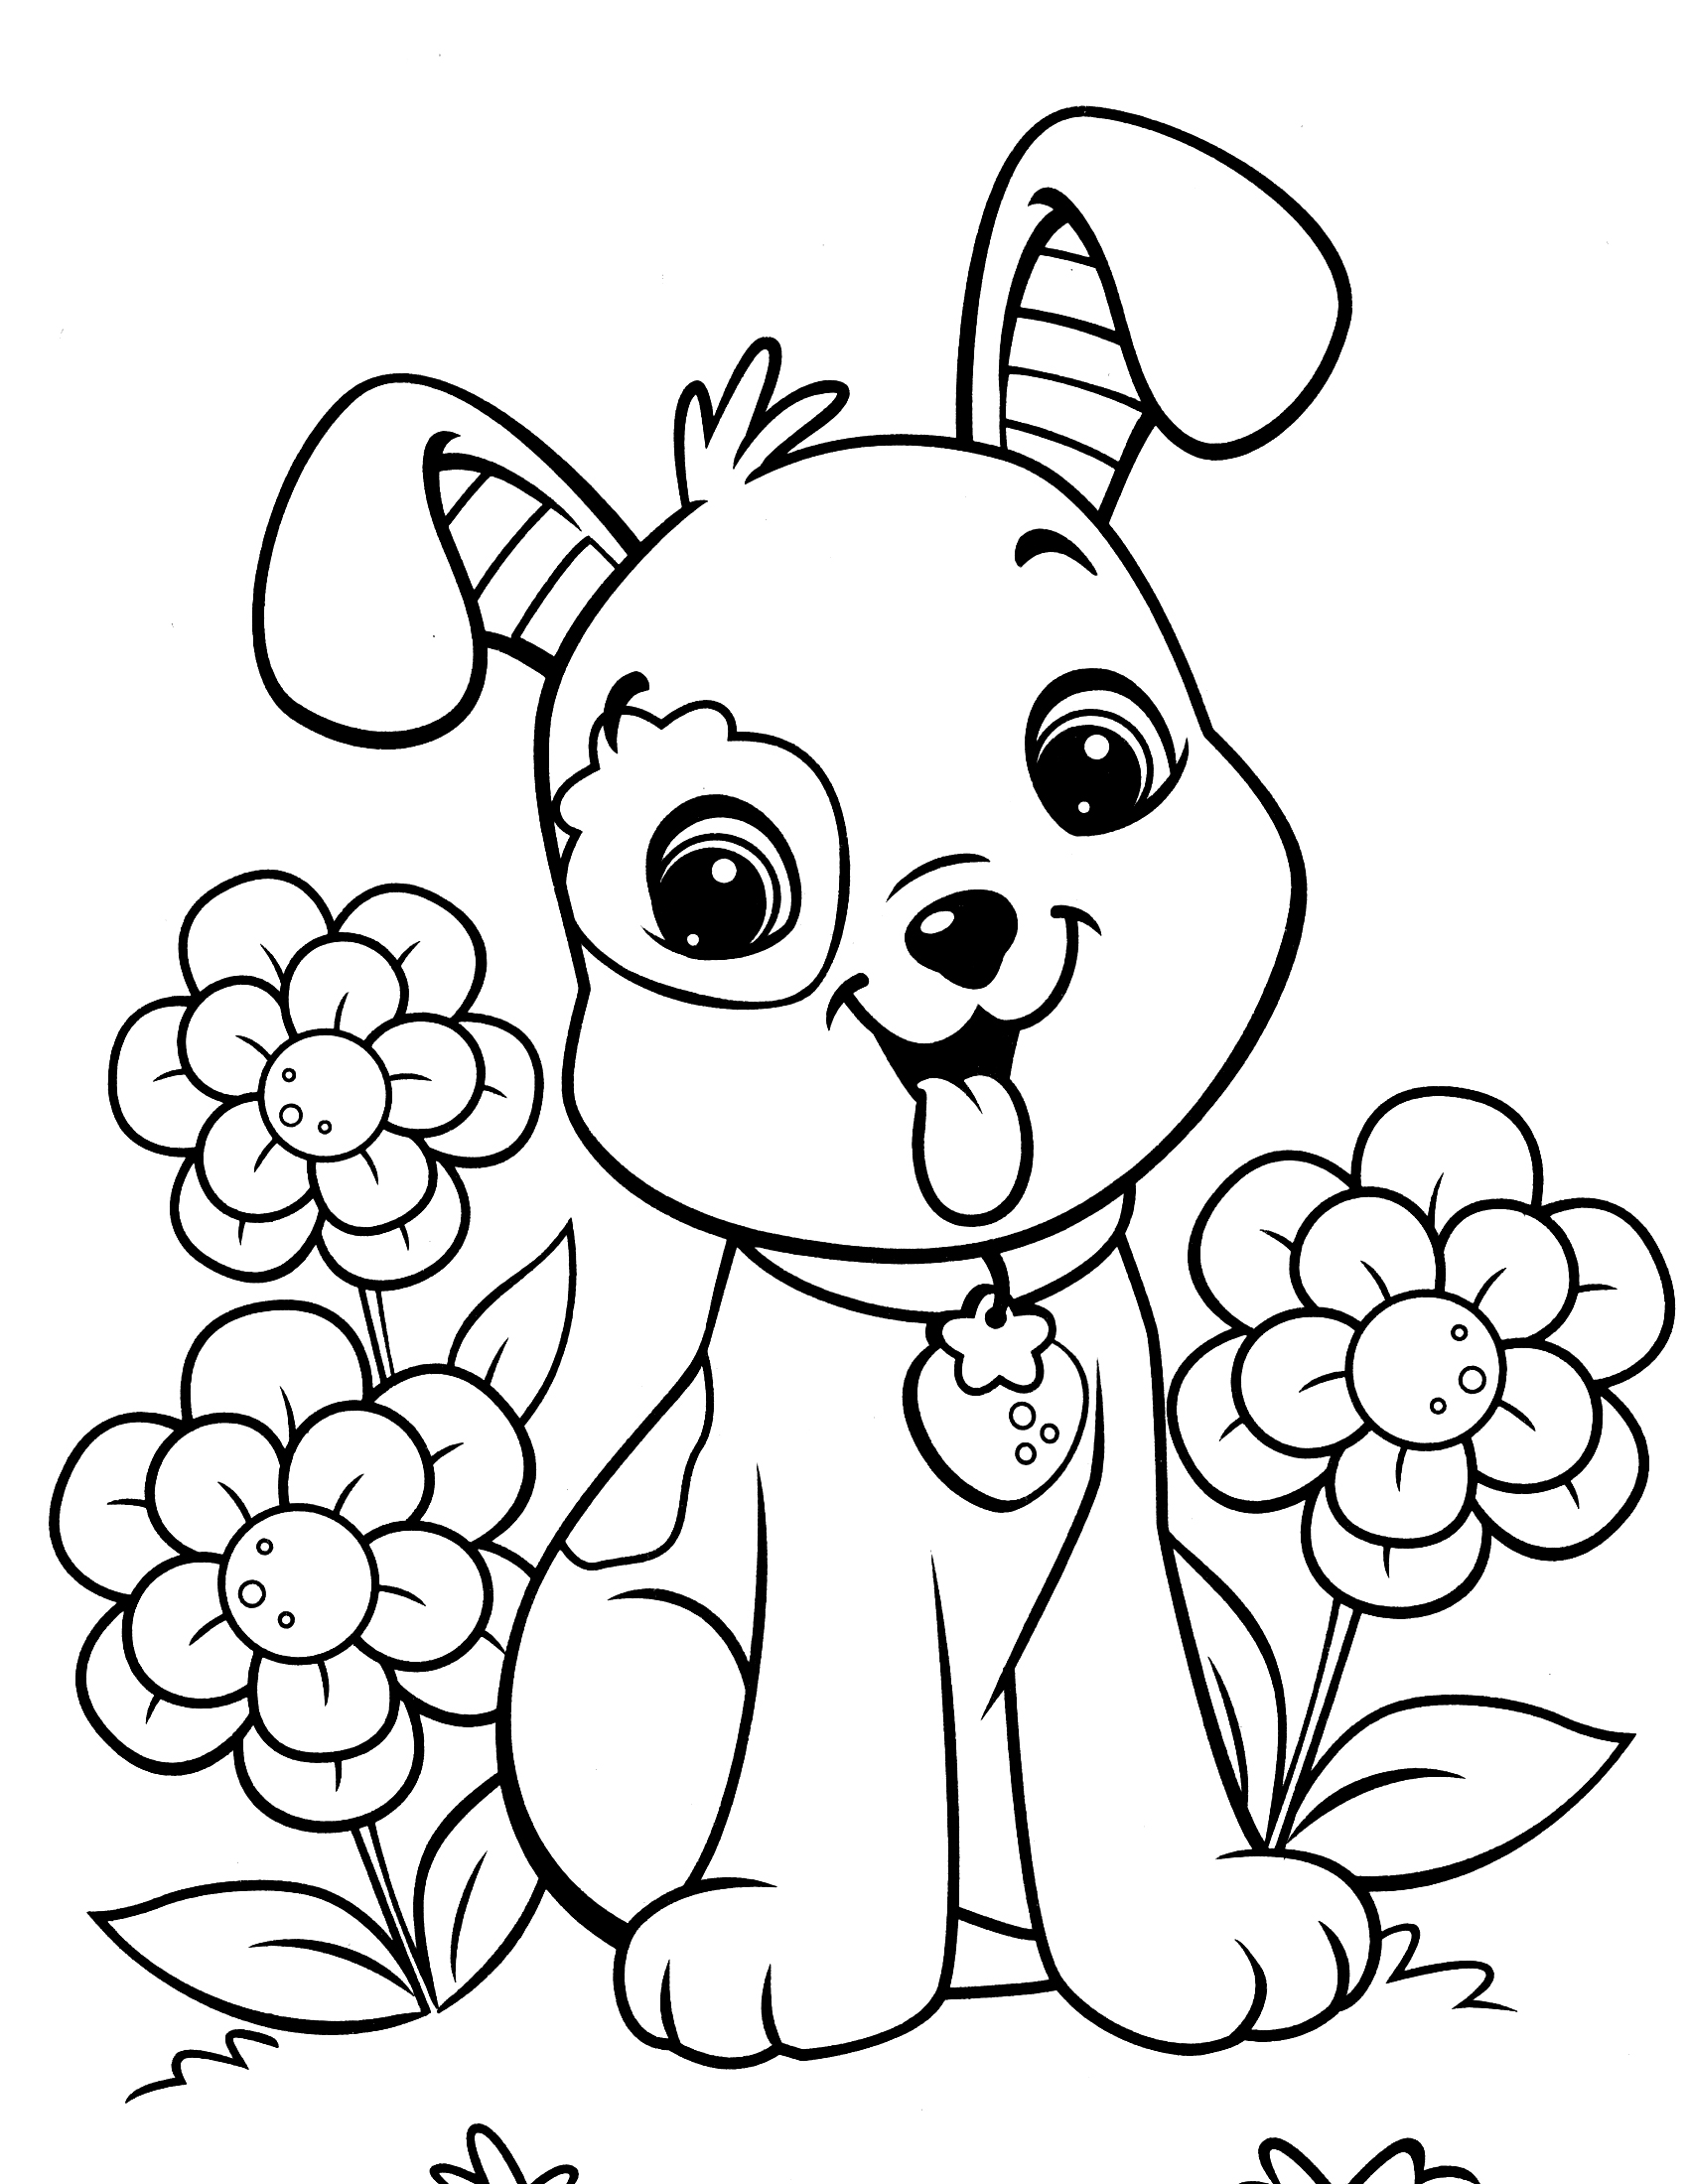 colouring dog pictures dog coloring pages for kids preschool and kindergarten dog colouring pictures